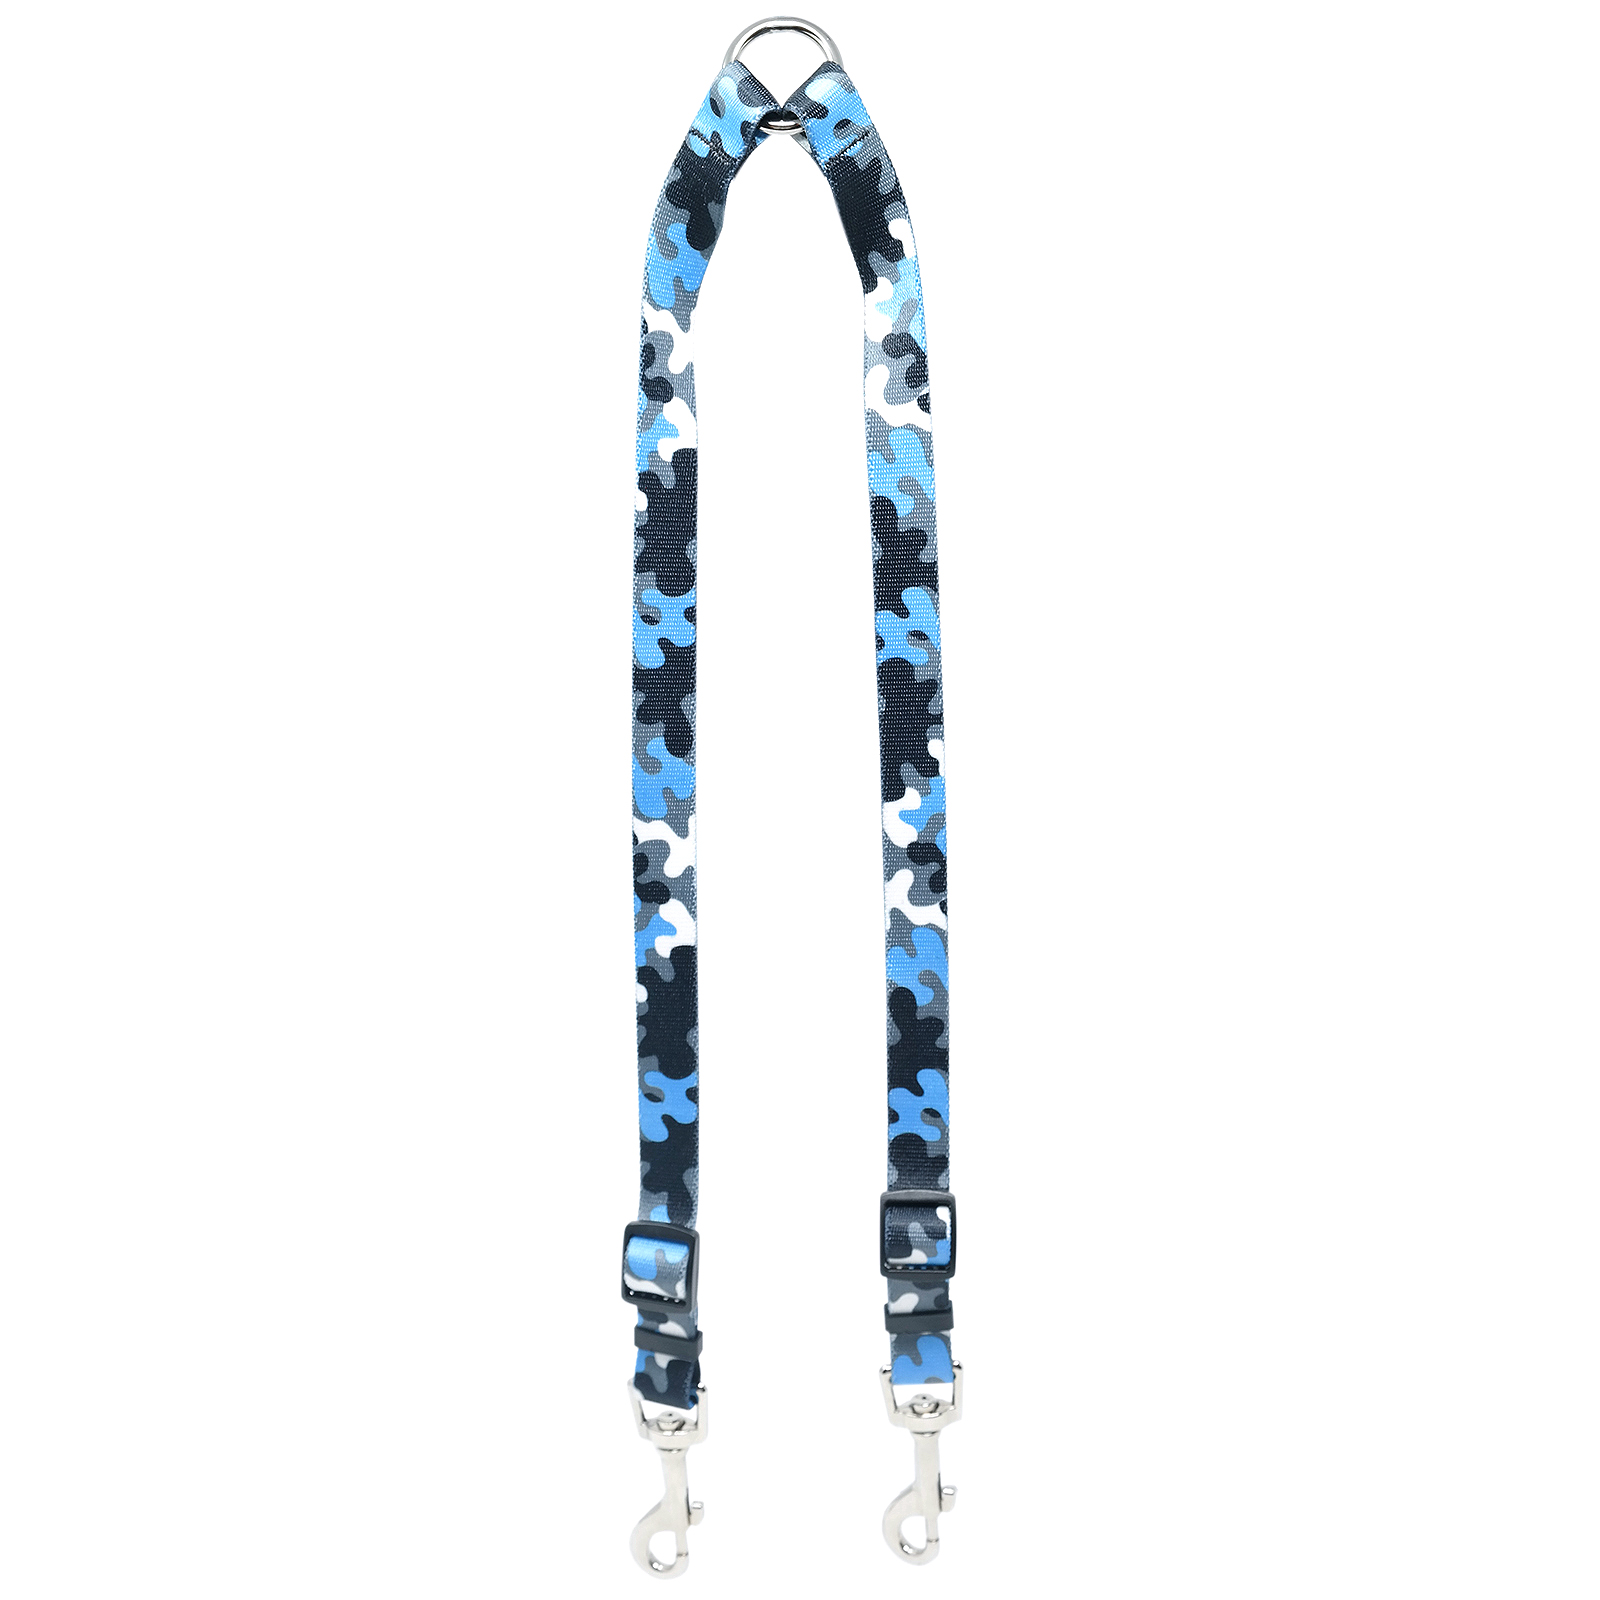 Light Blue & Black Camo Coupler Lead